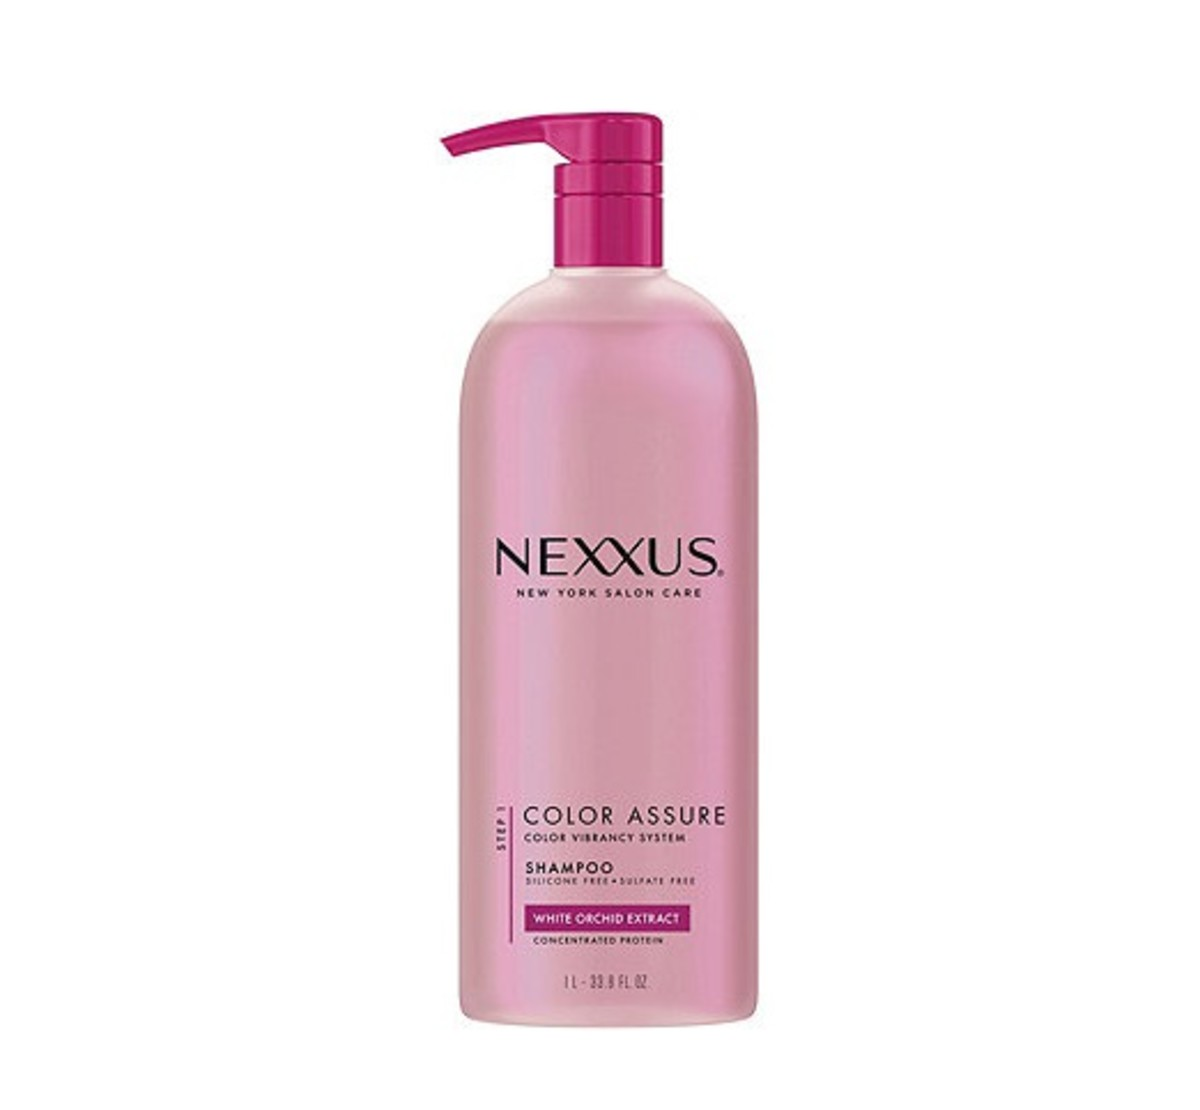 Nexxus Color Assure Vibrancy Retention Shampoo